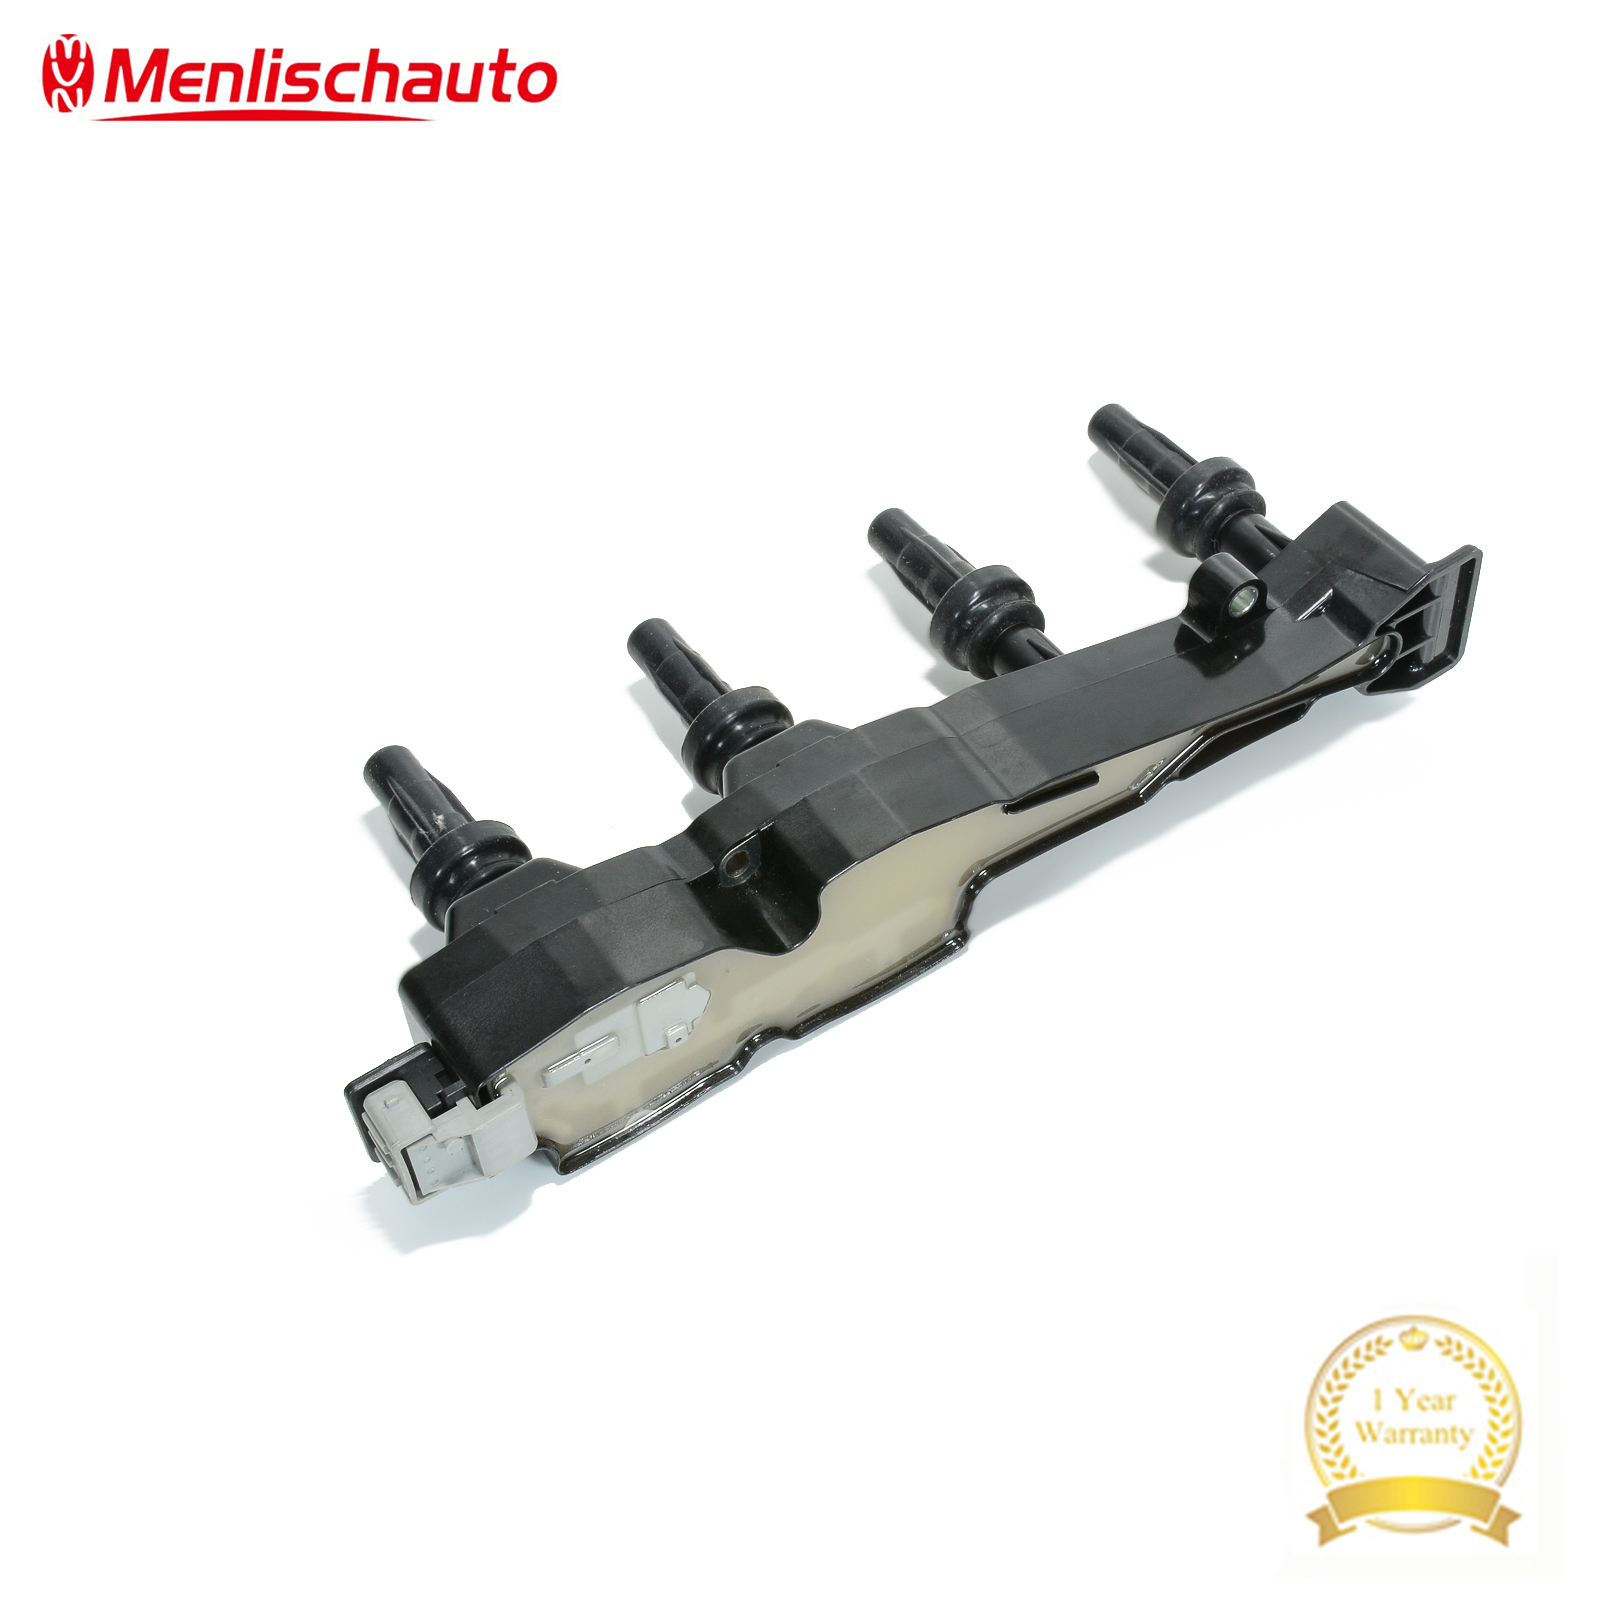 New NGK Ignition Coil For CITROEN Xsara 2.0 Coupe 2000-04